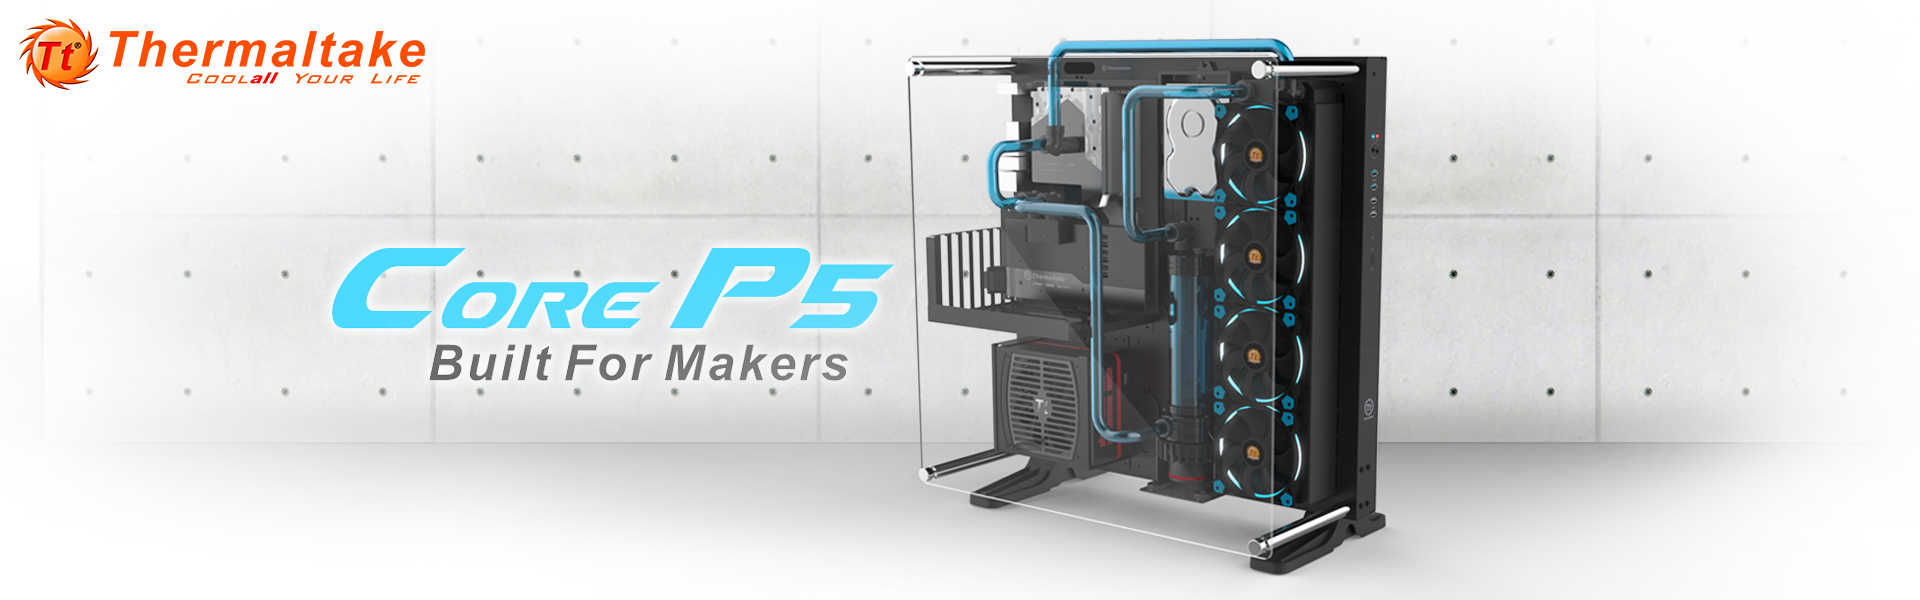 Thermaltake New Core P5 ATX Wall Mount Panoramic Viewing ...